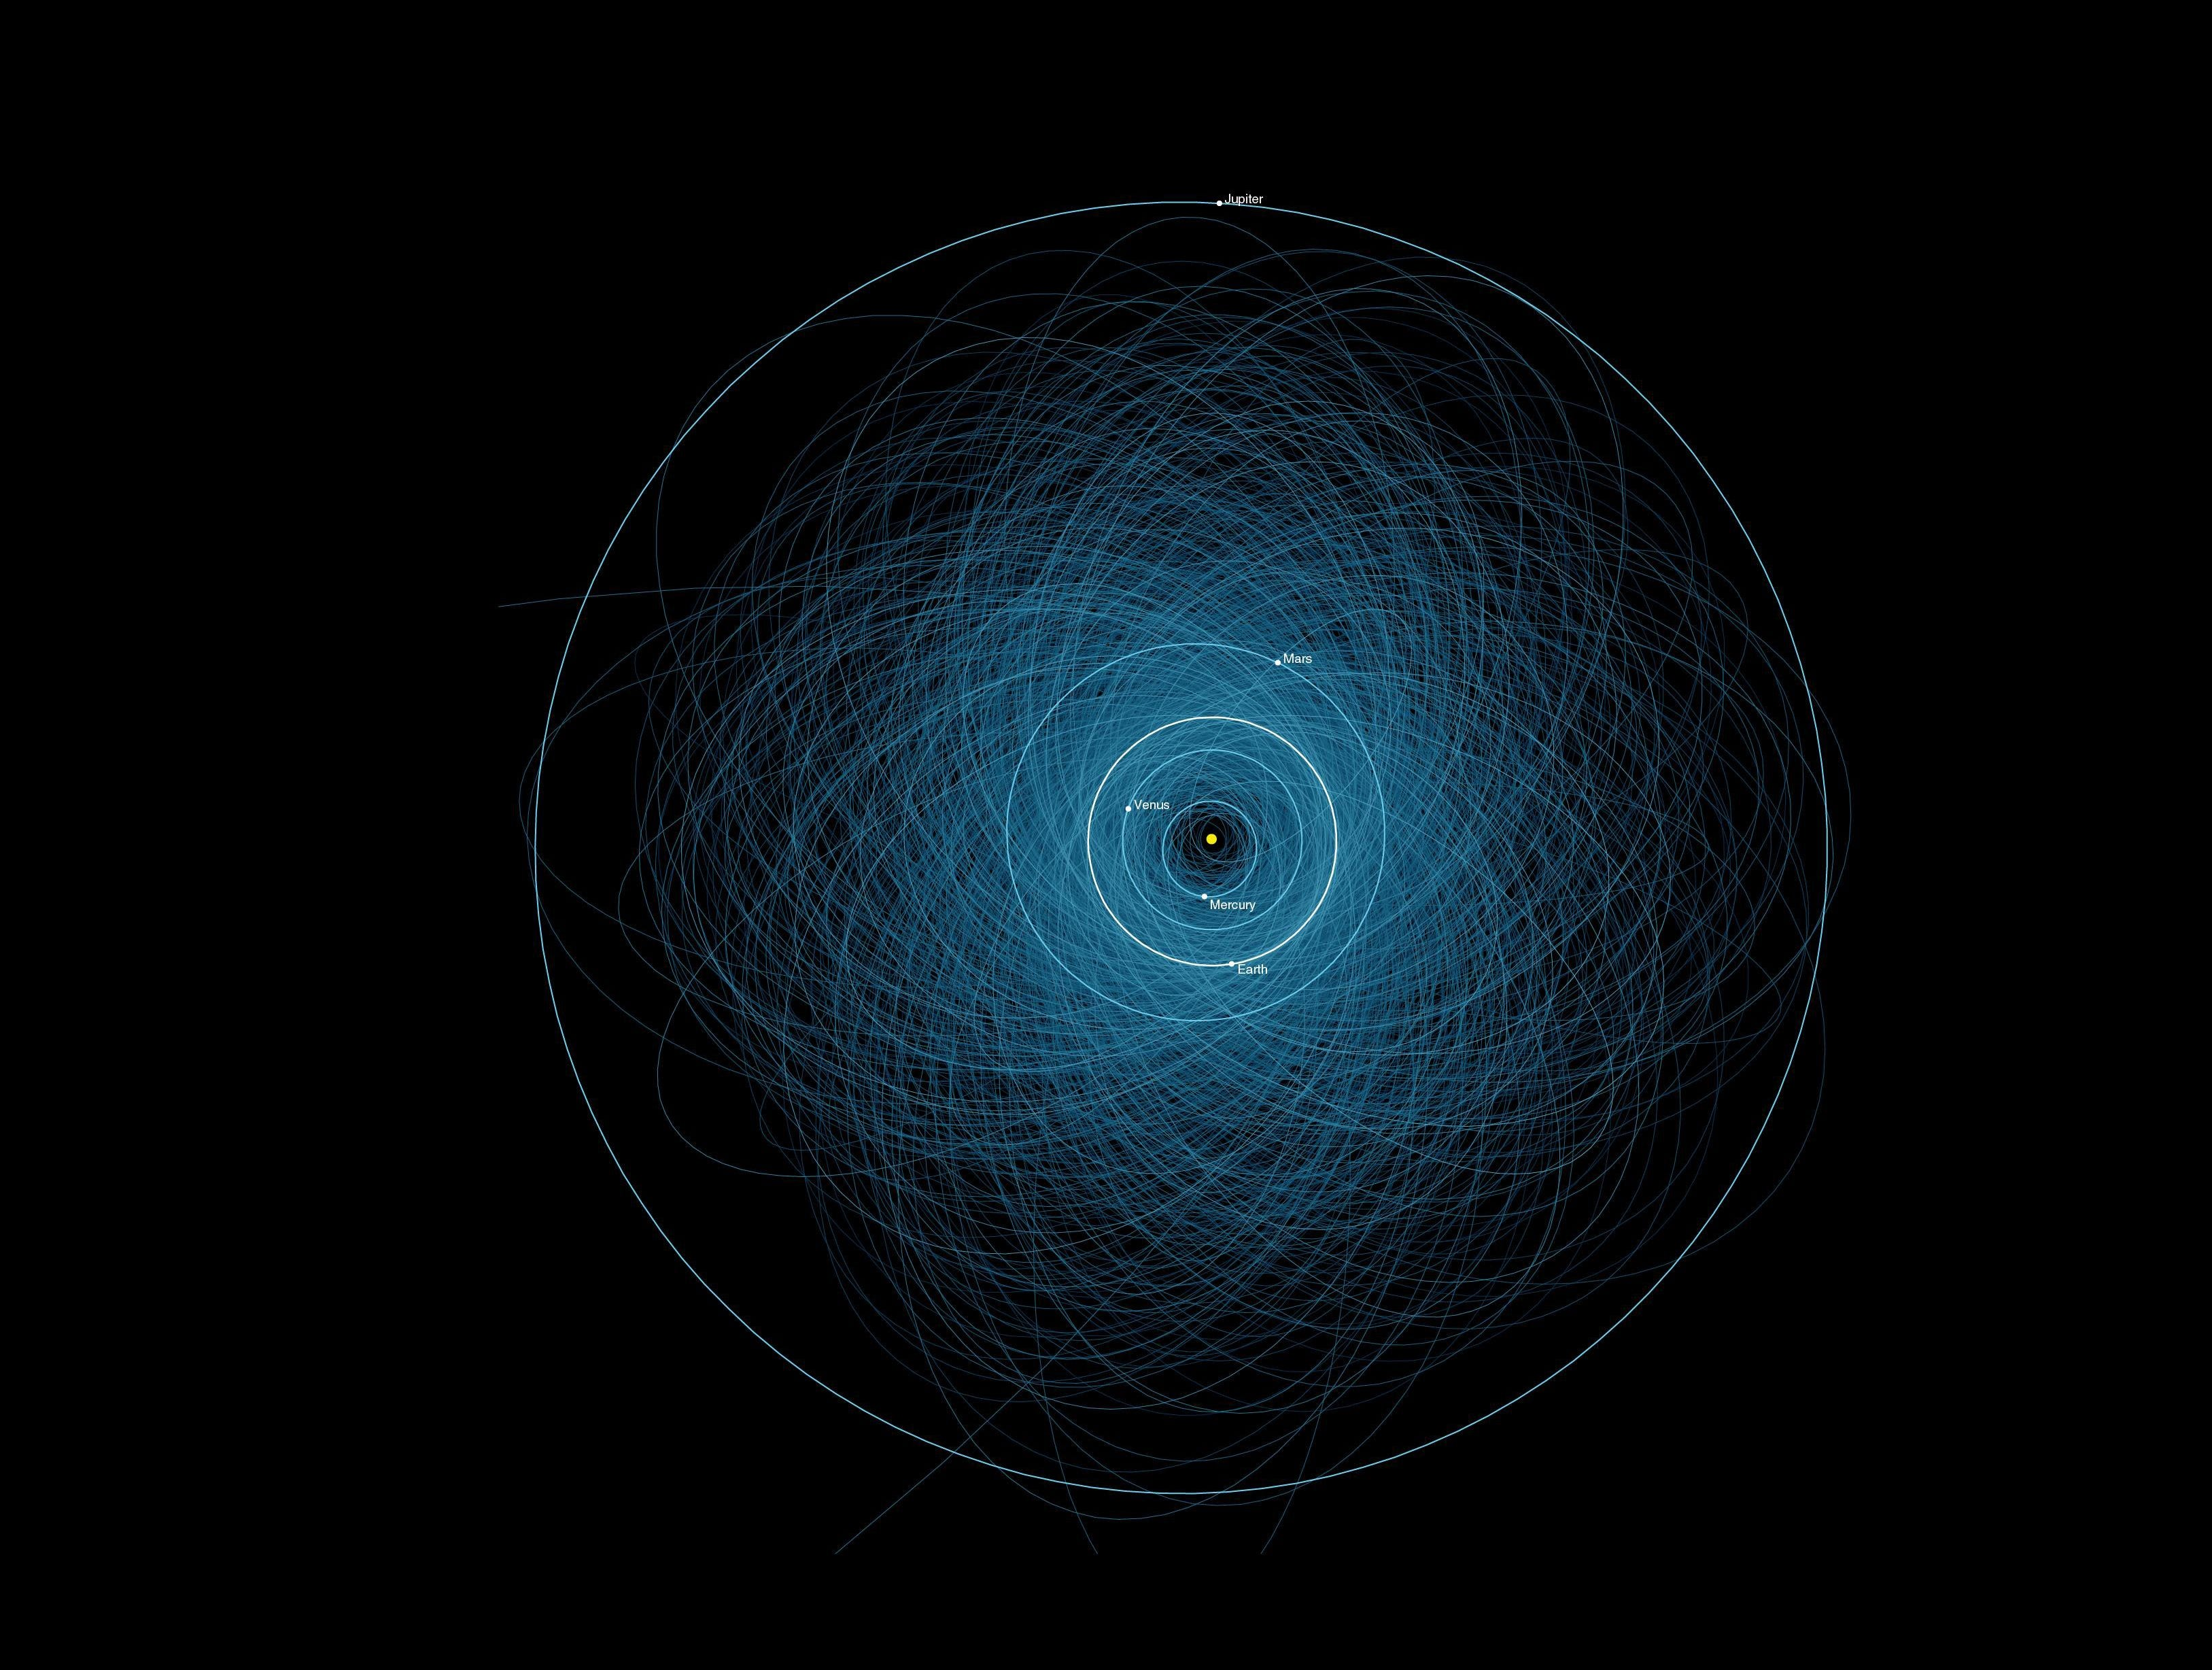 NASA graphic shows the orbits of all the known Potentially Hazardous Asteroids (PHAs), numbering over 1,400 as of early 2013.